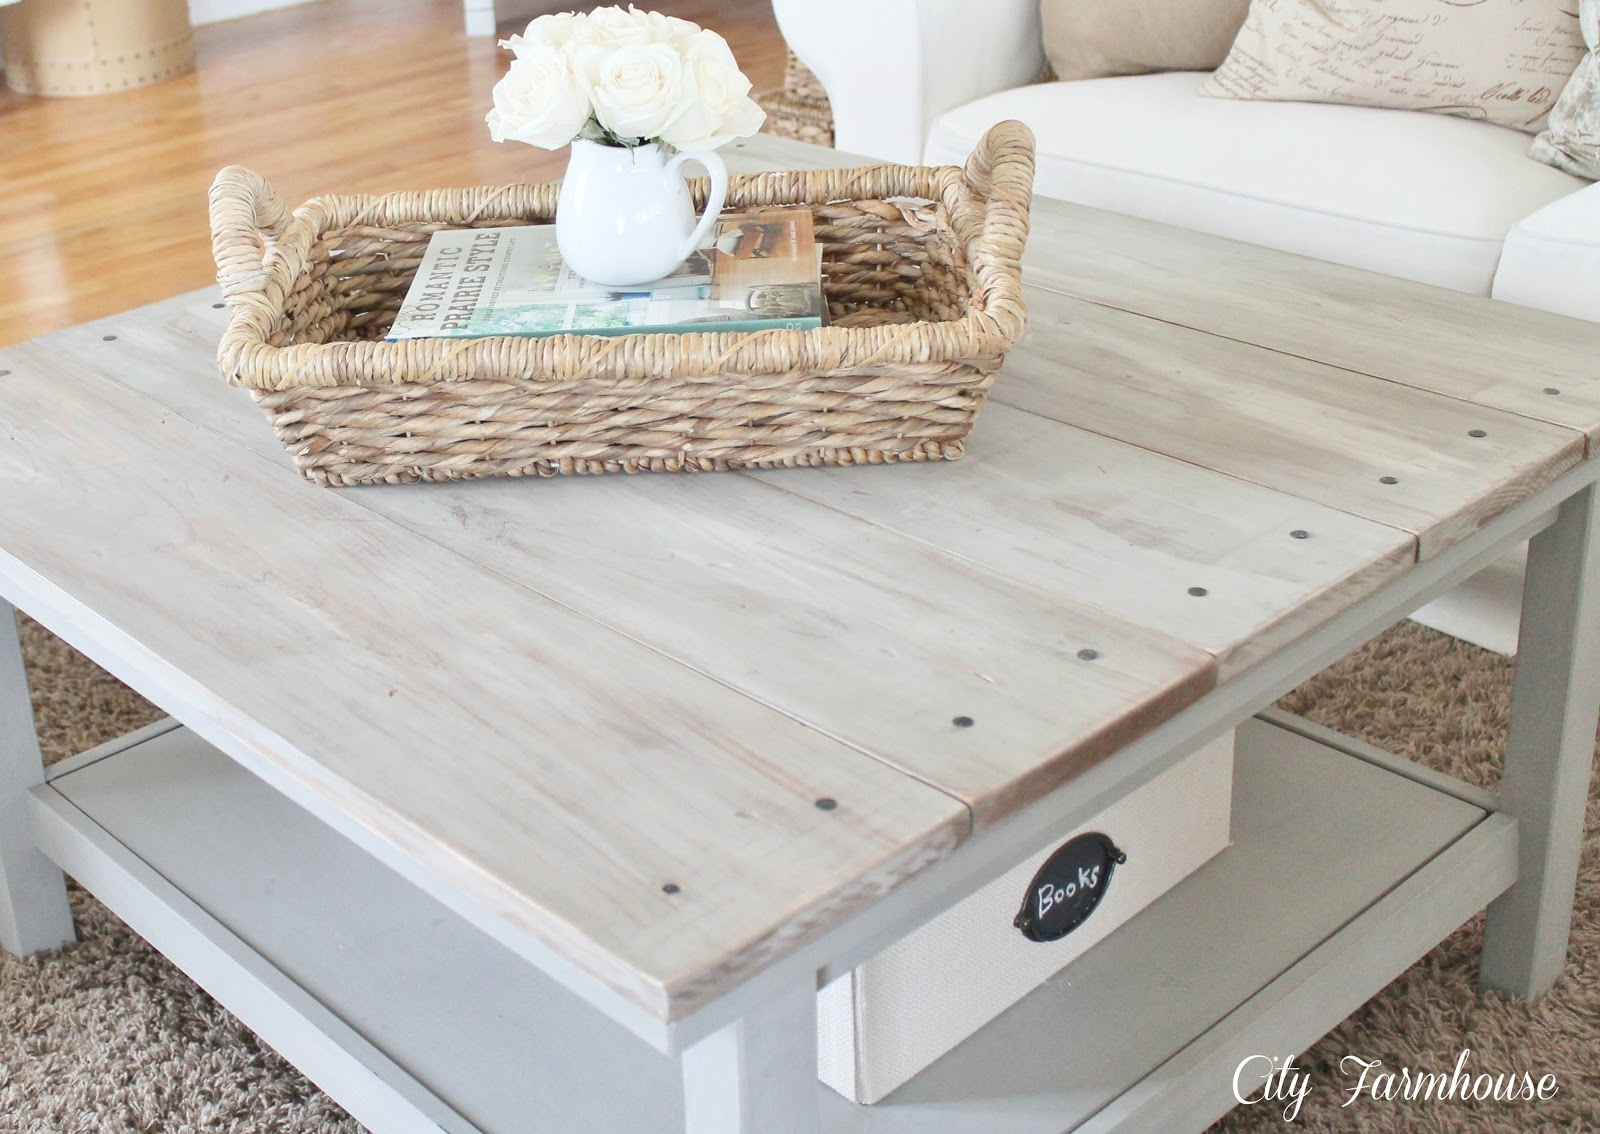 Inspiration relooker une table basse la nouvelle page - Customiser table en verre ...